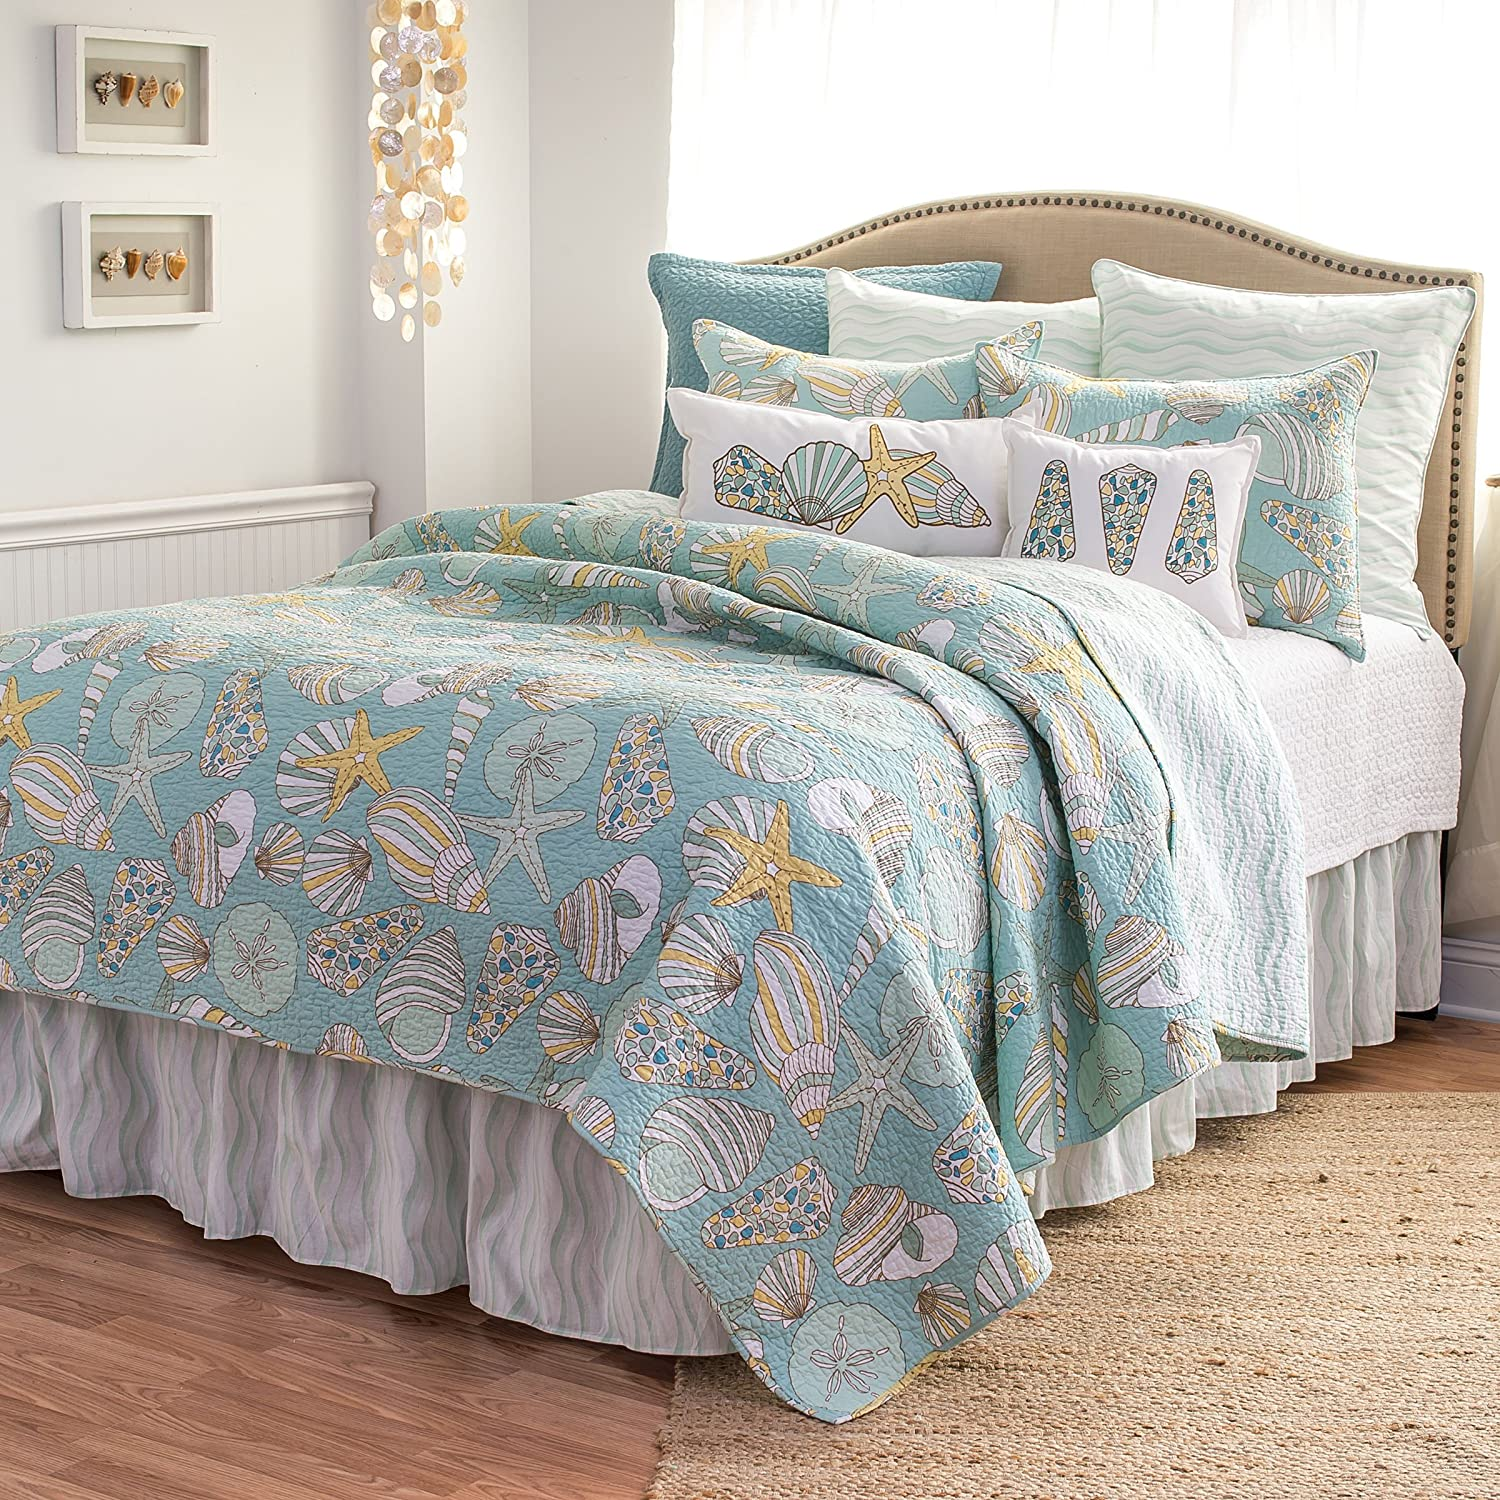 C&F Home Cabana Bay Twin Quilt 100% Cotton Lightweight Machine Washable Reversible Bedspread Coverlet Twin Multi-Color